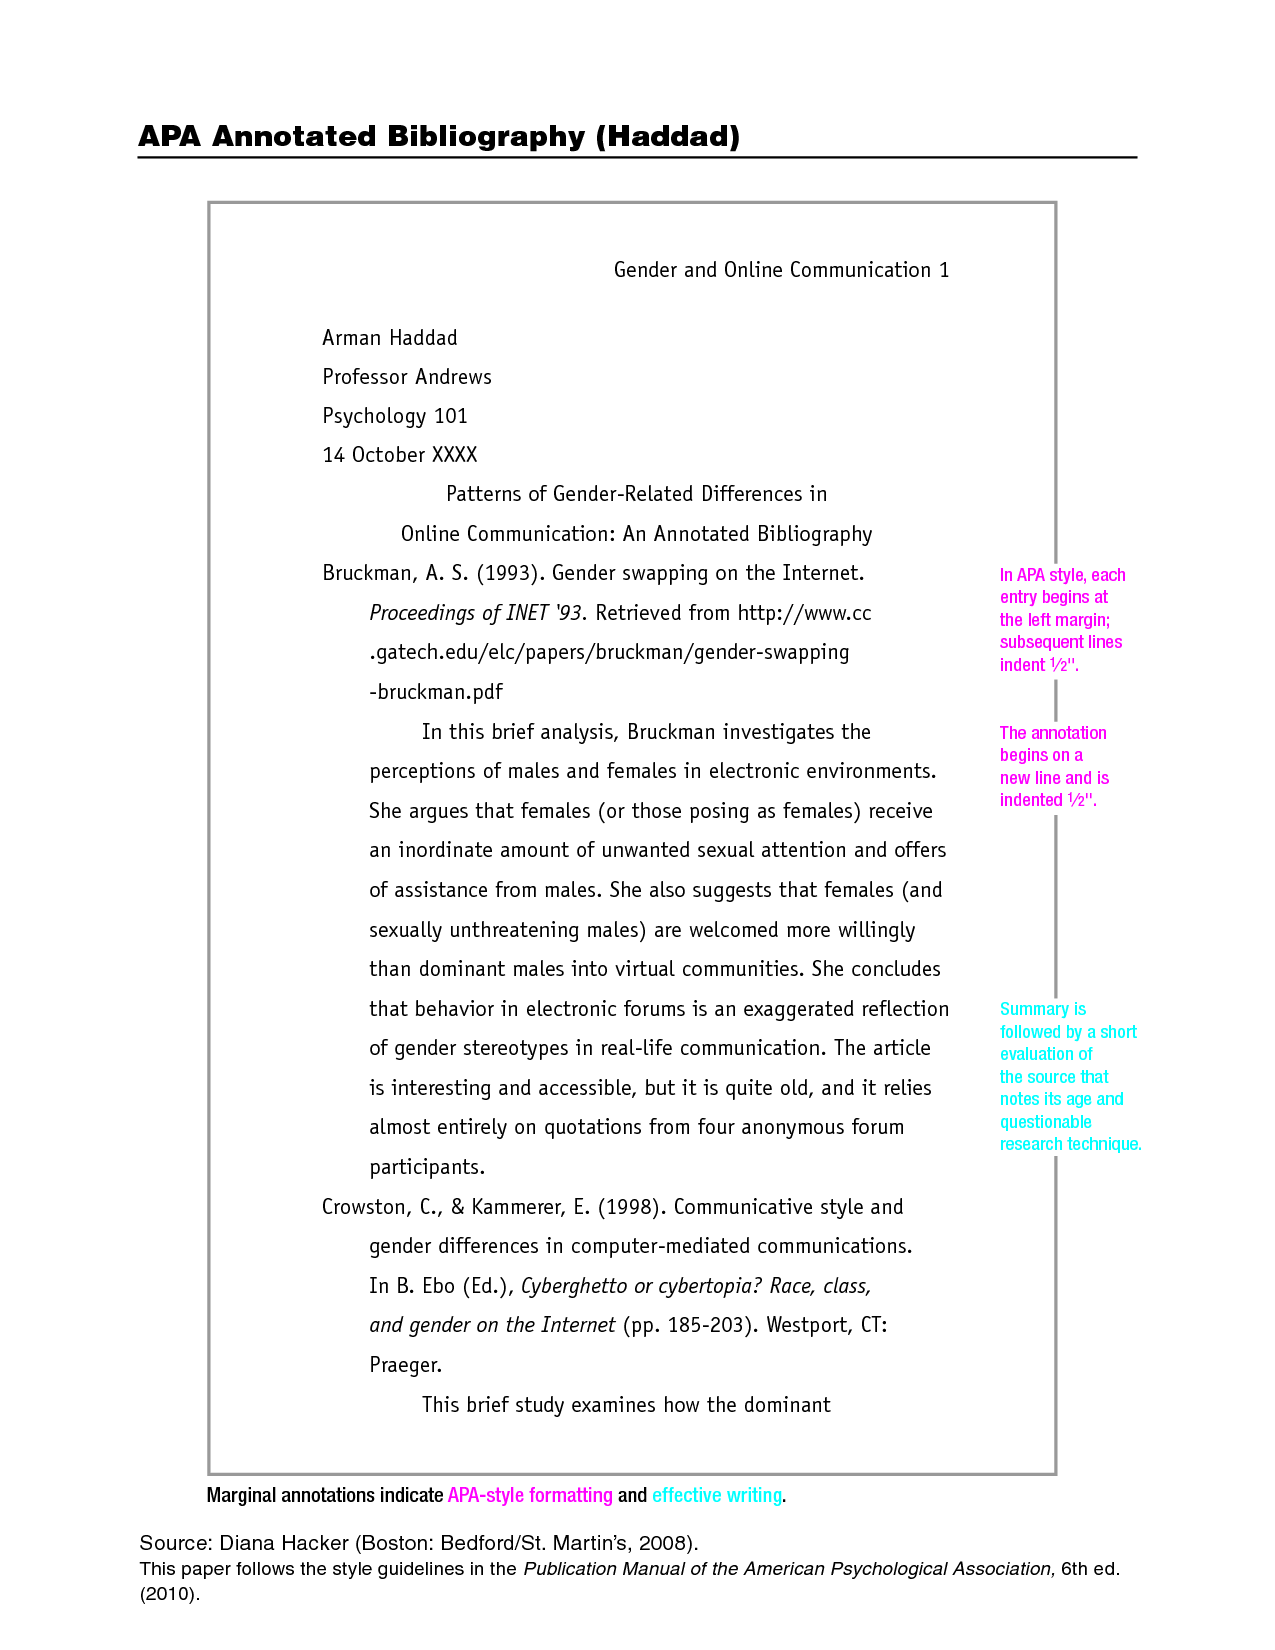 015 Research Paper How To Write Good Fast 1198784868 Unusual A Do You 3 Page On Food Full